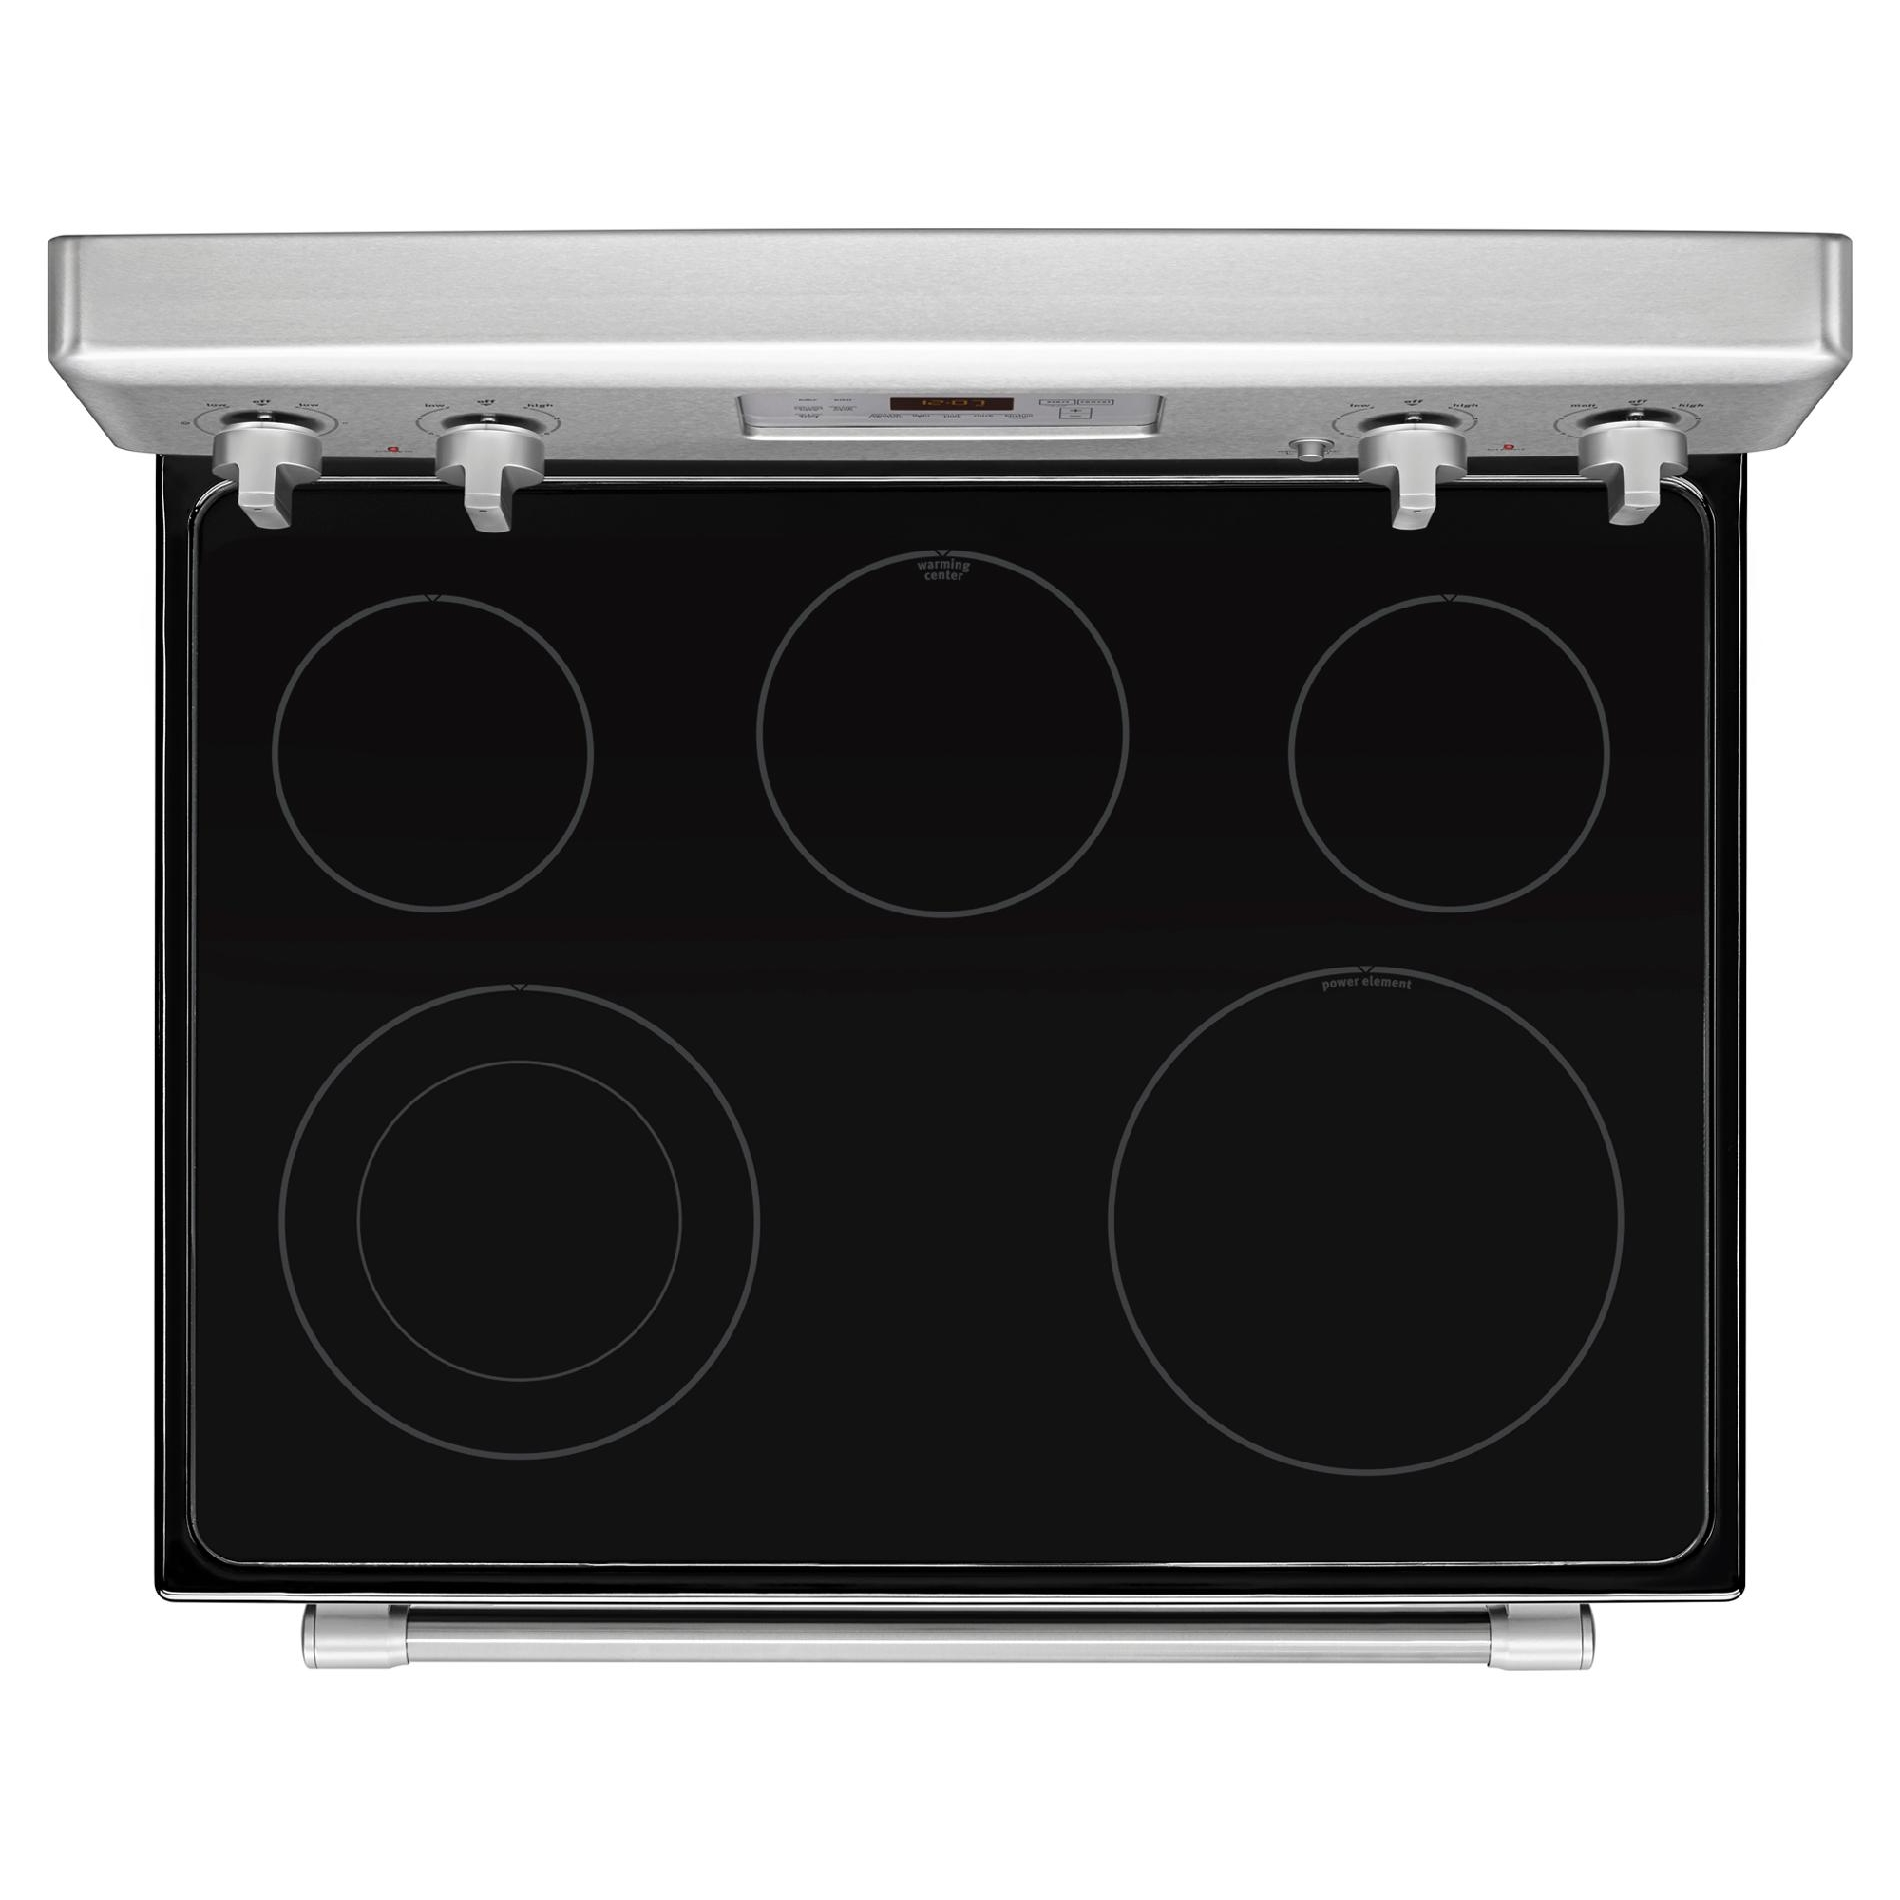 Maytag MER8700DS 6.2 cu. ft. Electric Range w/ 5th Element - Stainless Steel